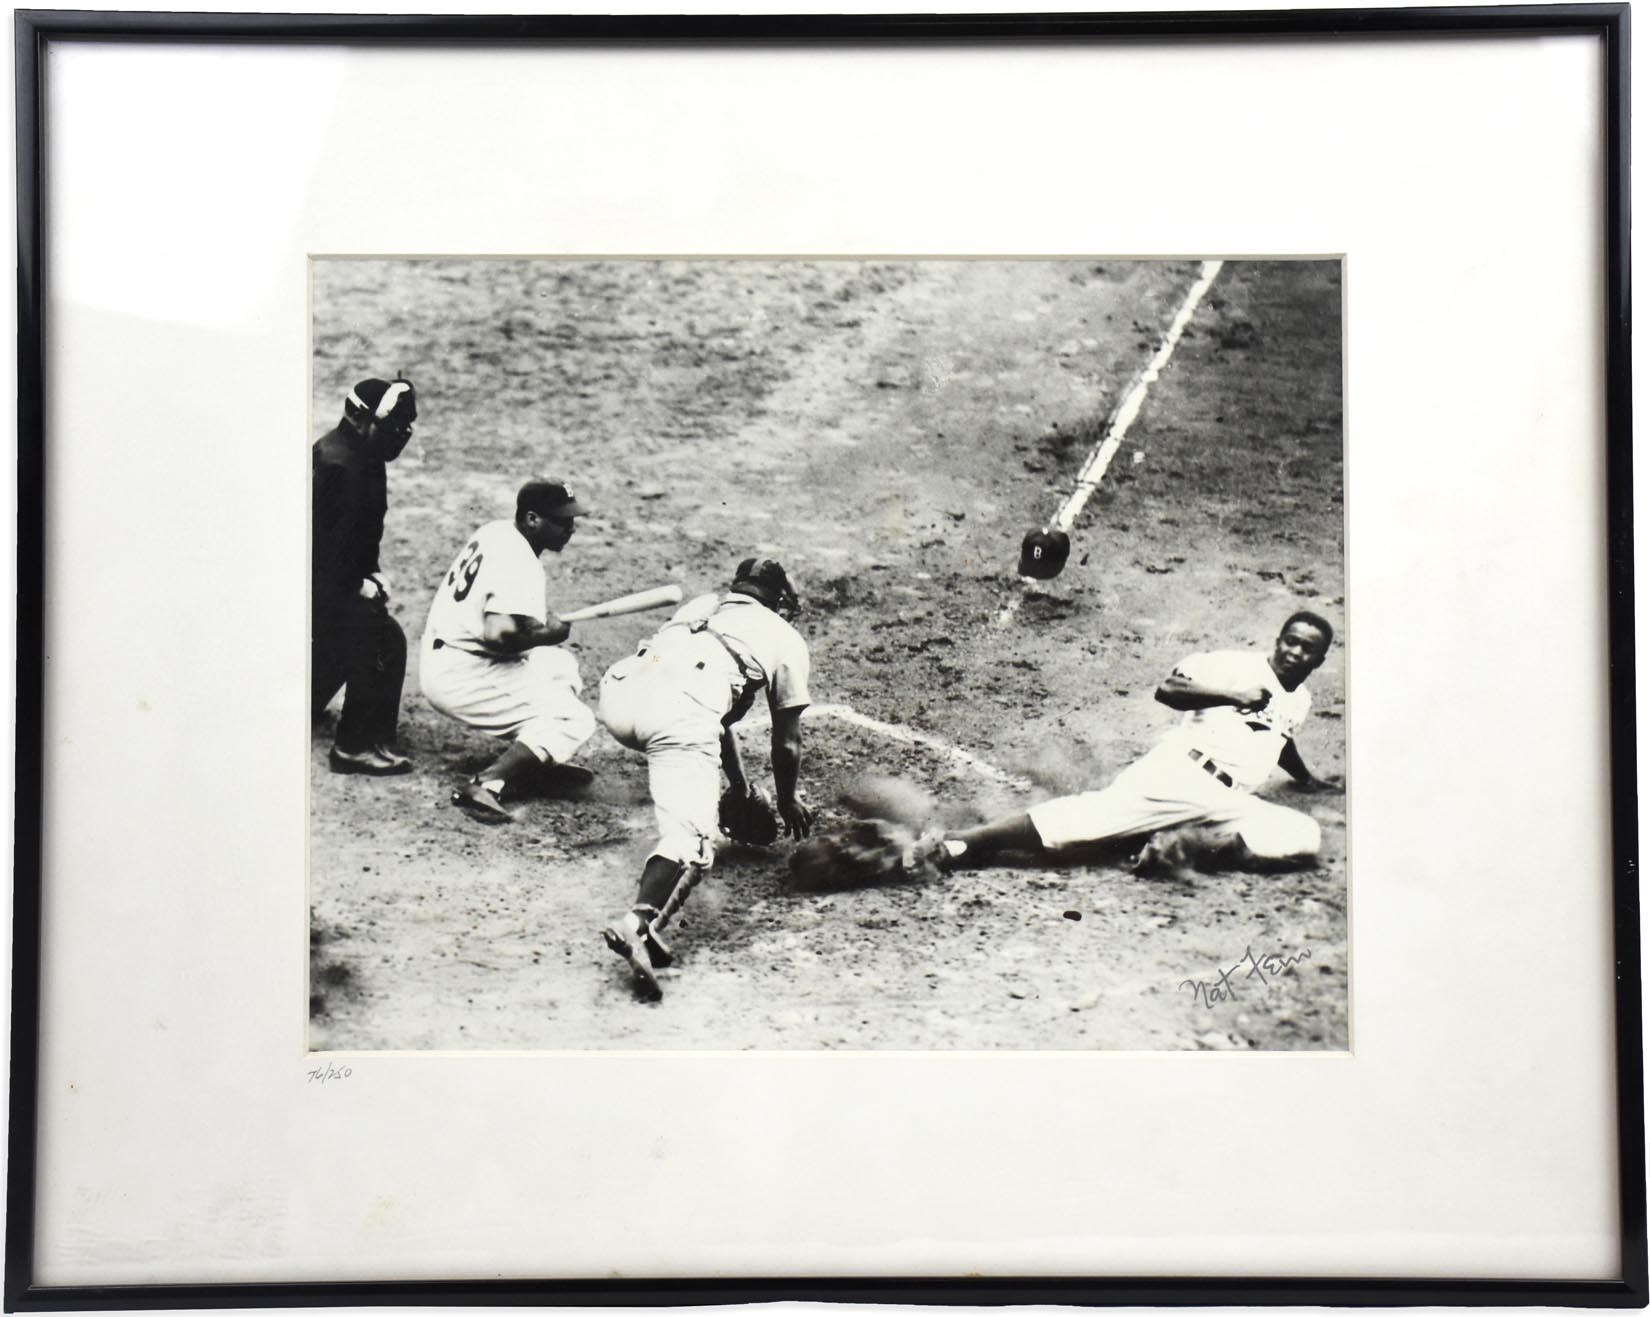 Jackie Robinson & Brooklyn Dodgers - Monthly 02-19